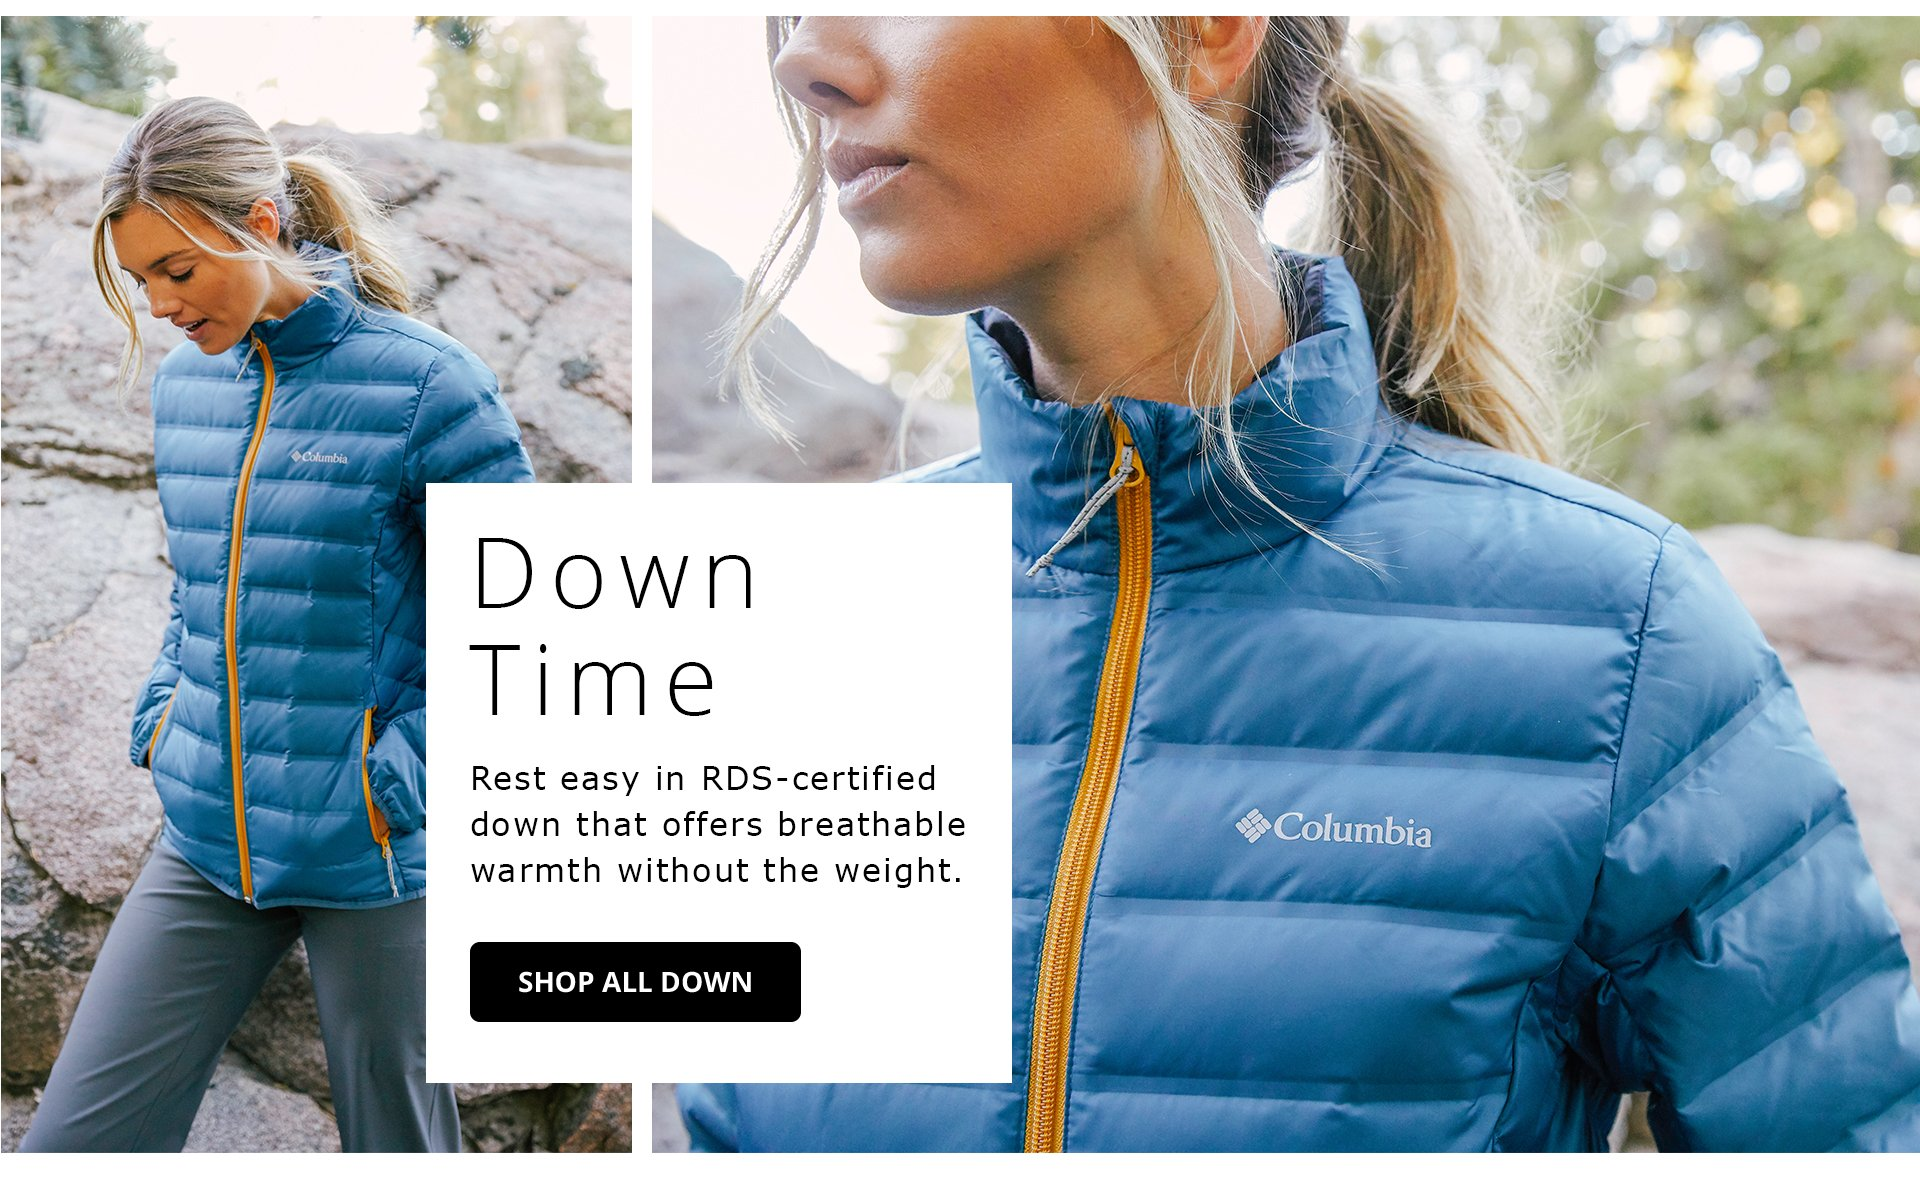 Down Time. Rest easy in RDS-certified down that offers breathable warmth without the weight. Shop All Down.